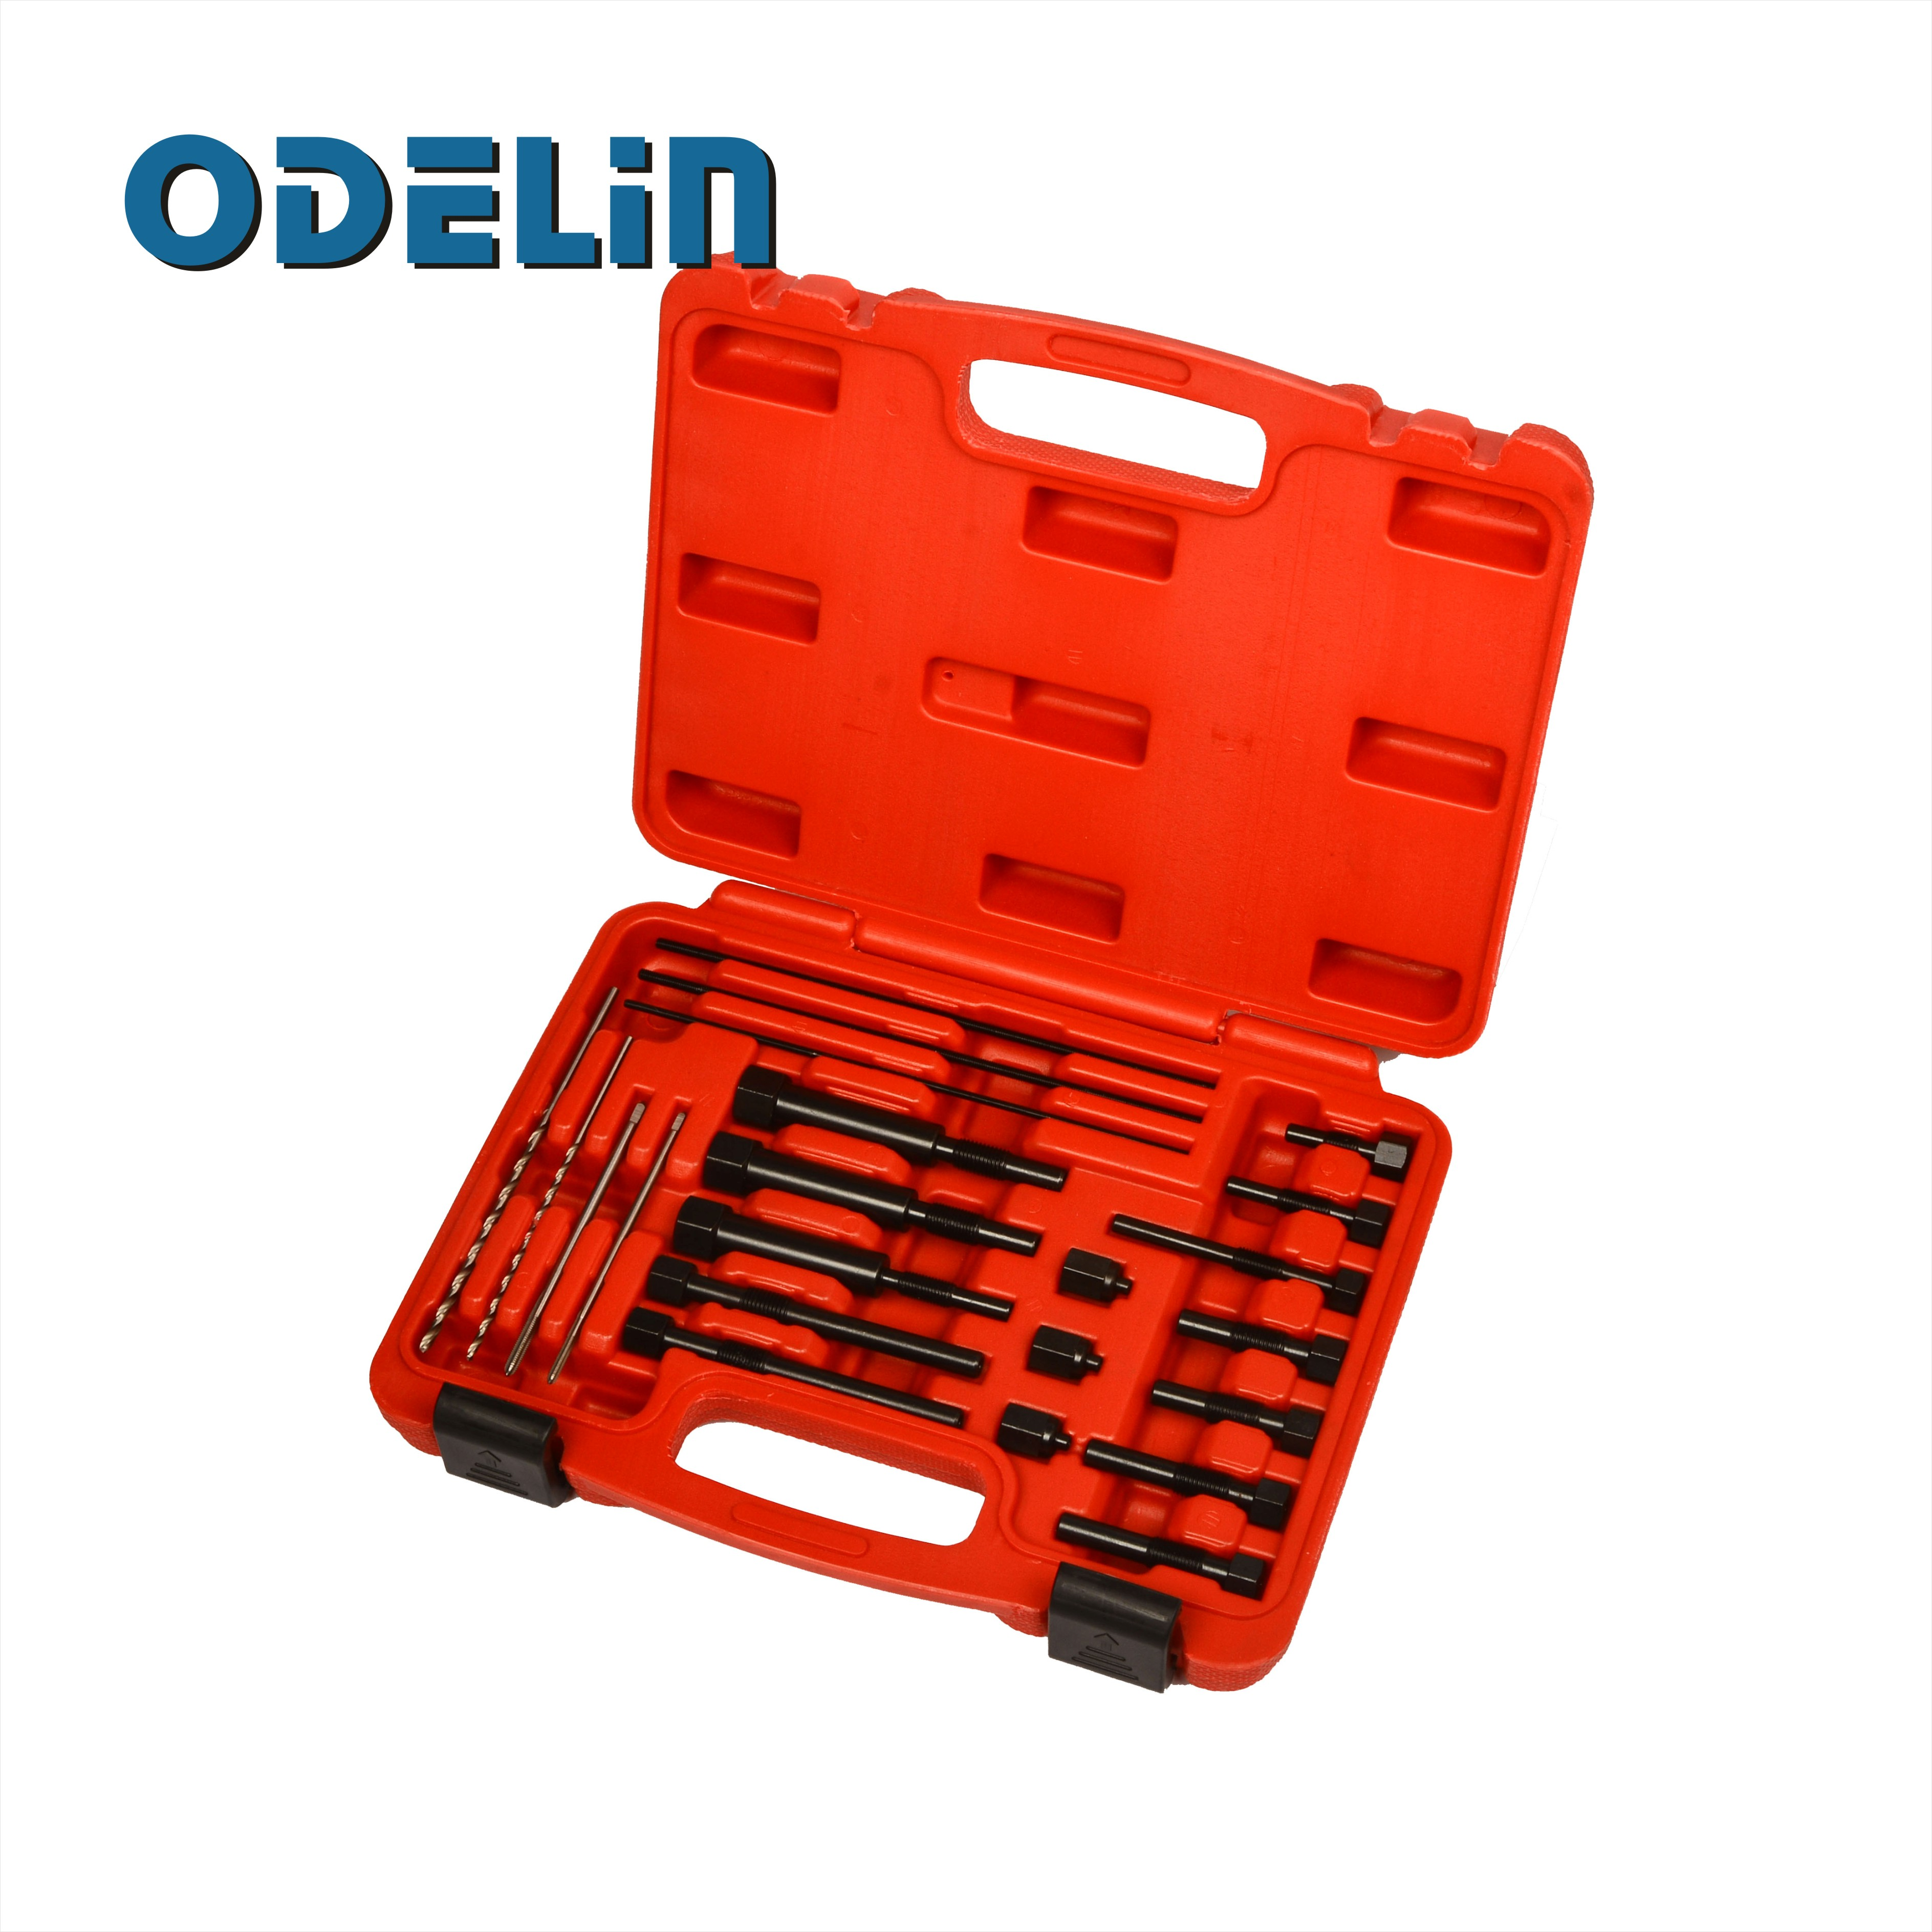 Glow Plug Electrodes Removal Extracting Plugs Tool Tools Set Kit Repair M8 M10